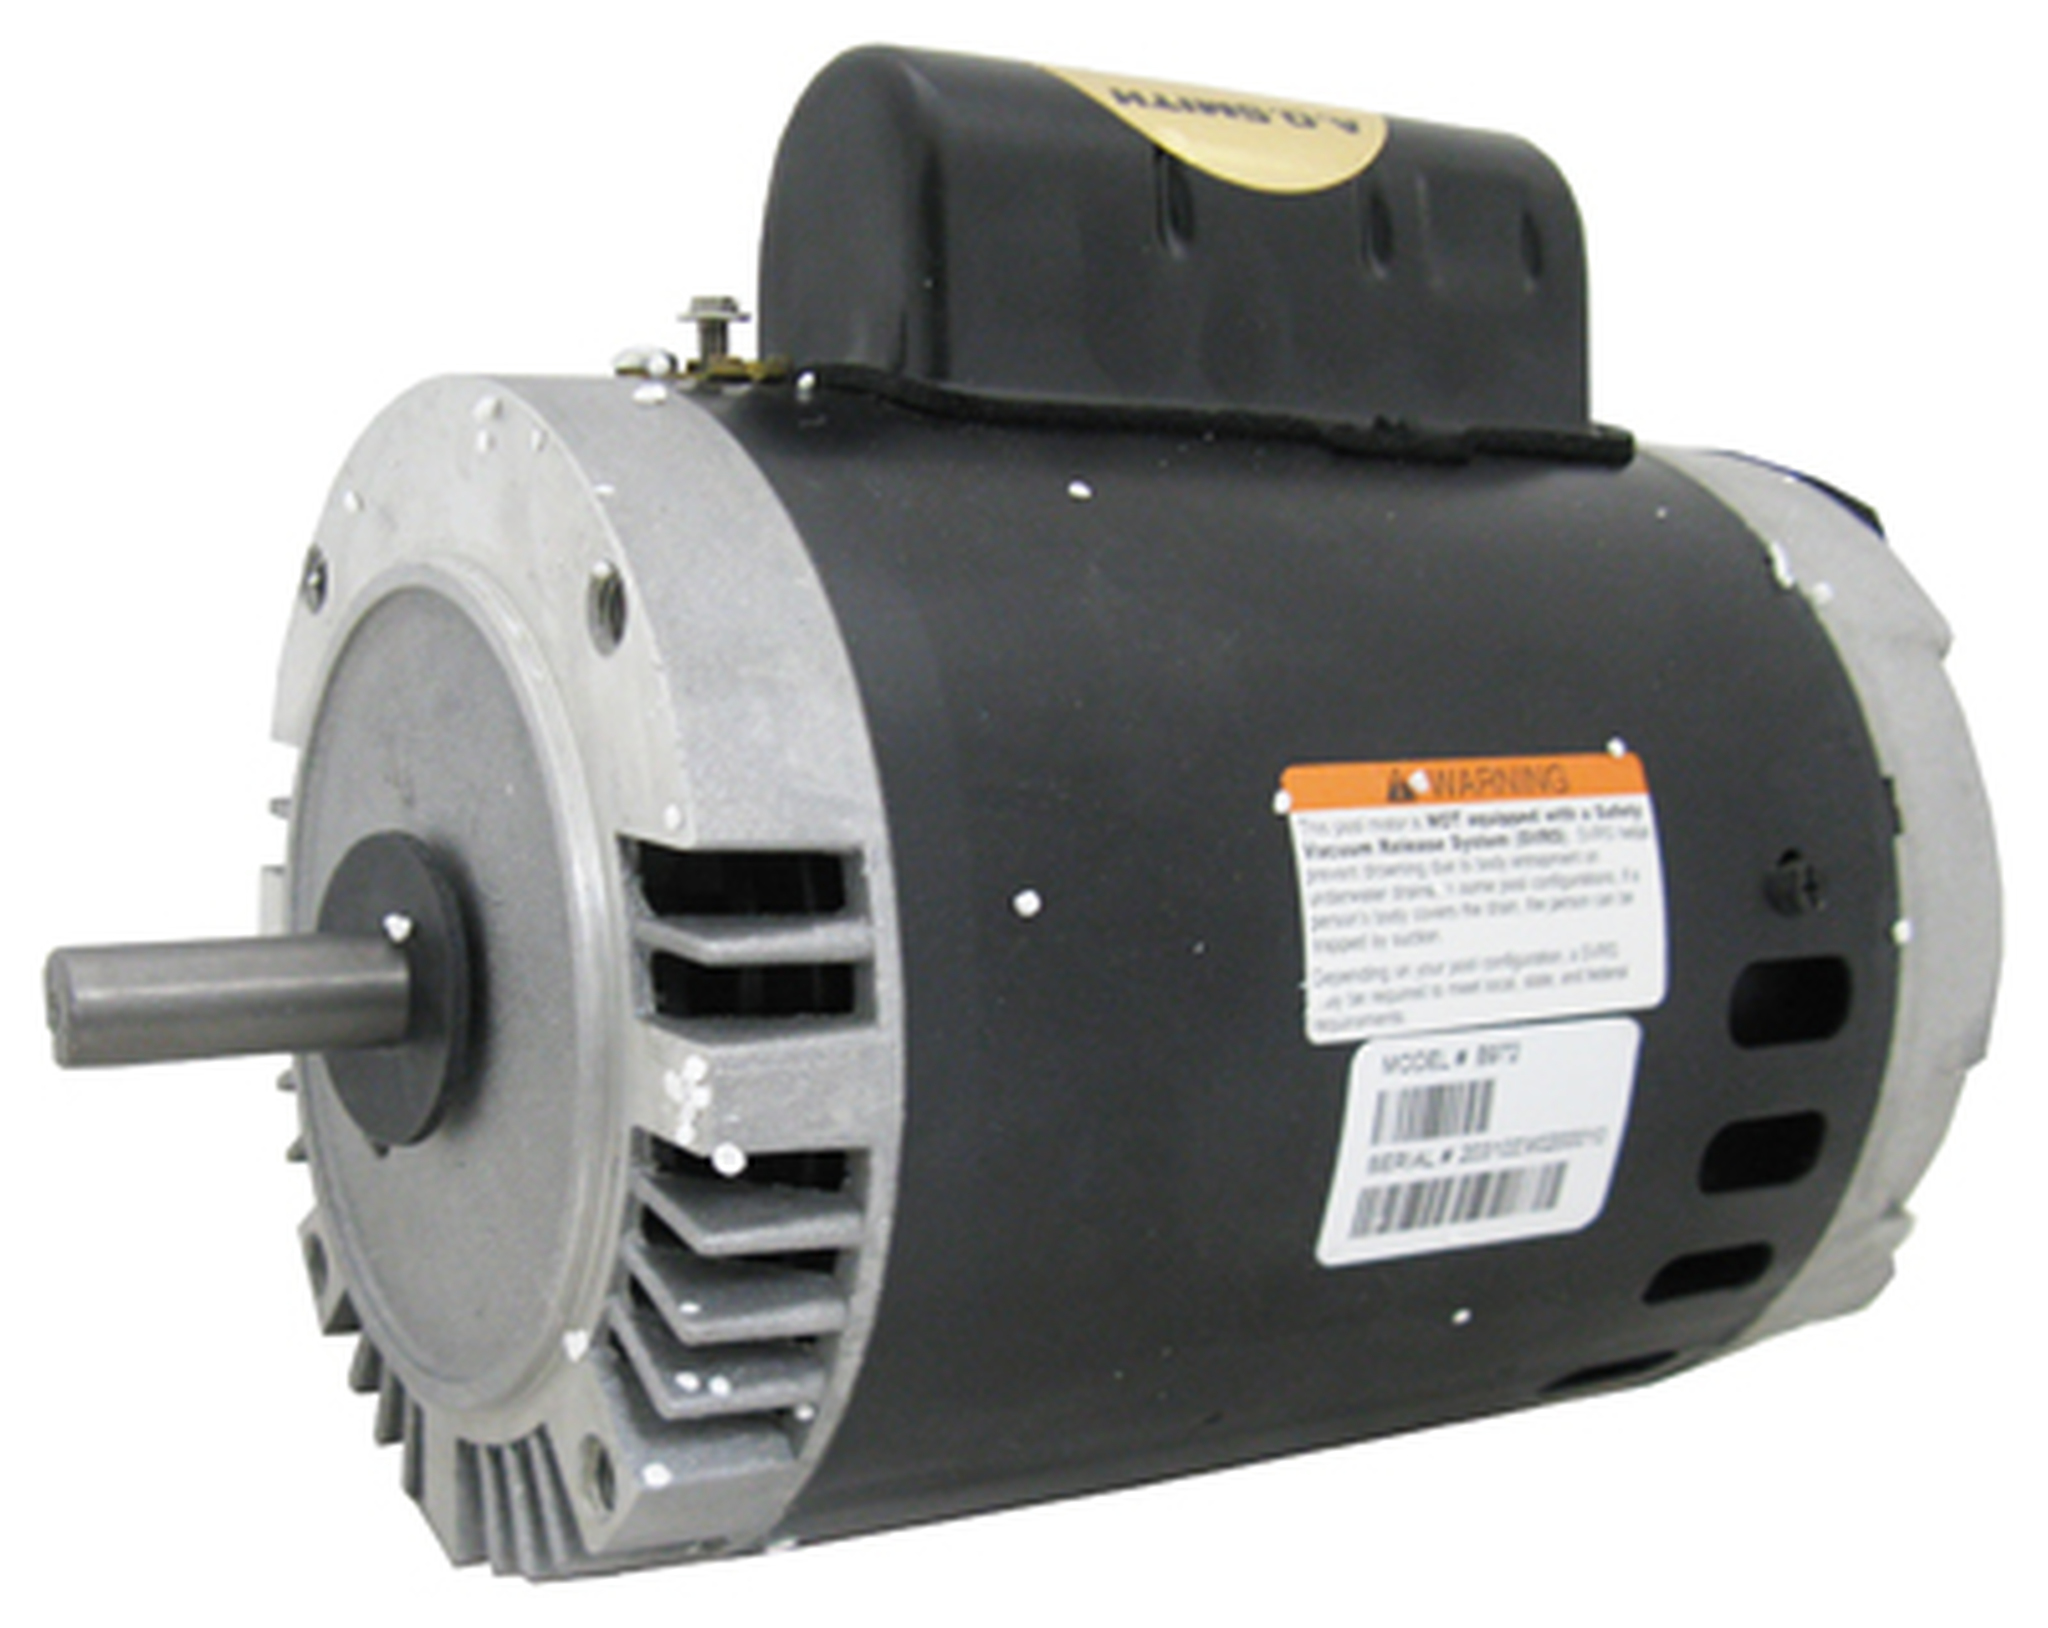 MOTORS - KEYED SHAFT 56C